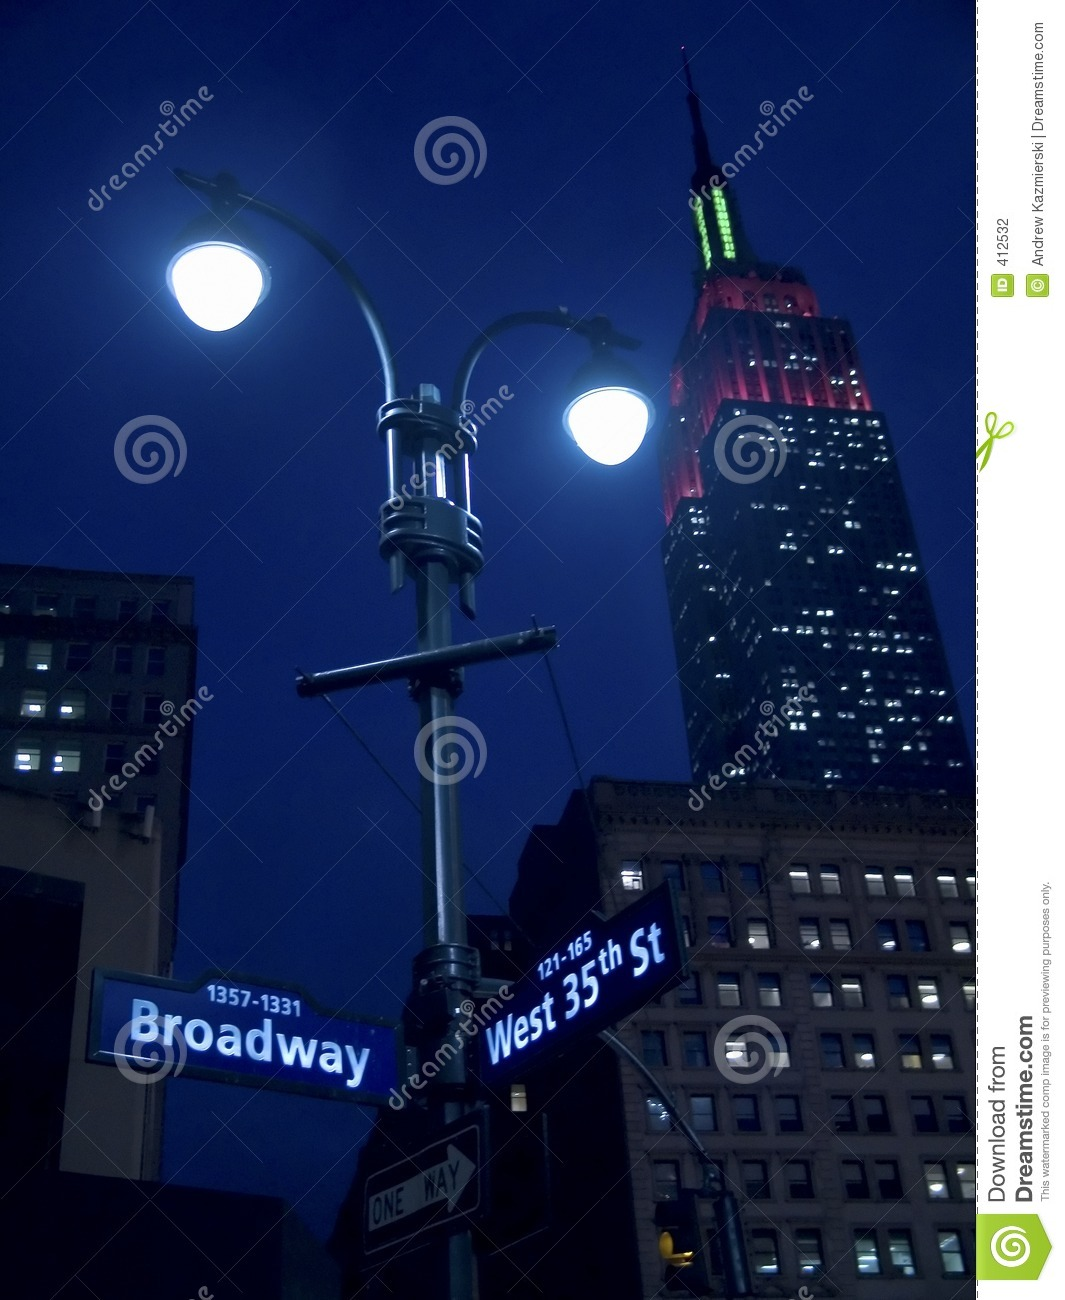 Indicatori luminosi su Broadway